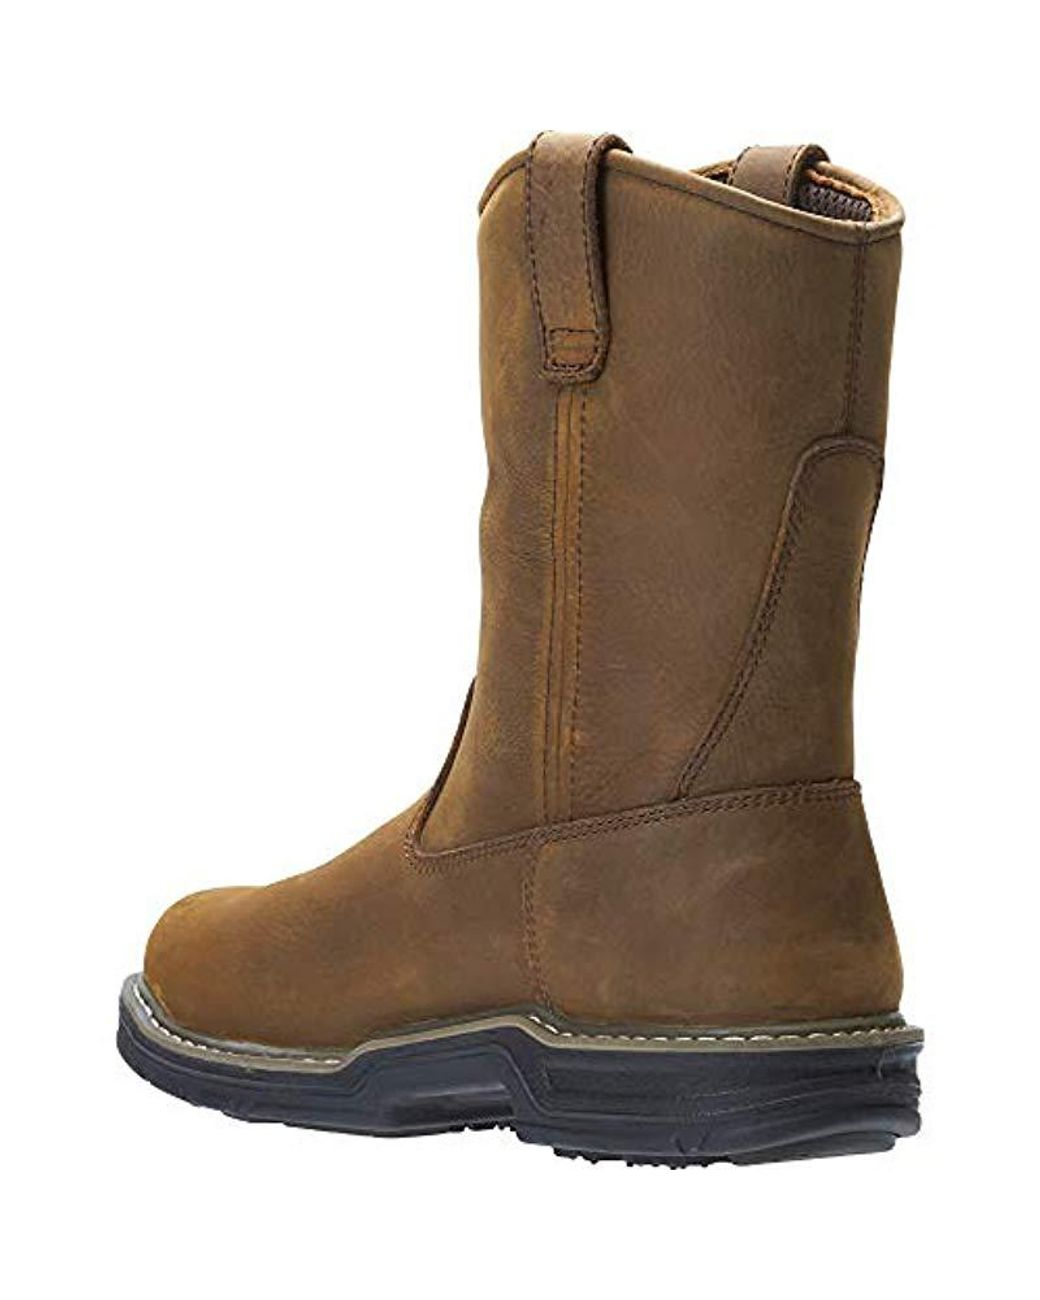 ca7be3ef0b6 Wolverine Brown Marauder Rubber Insulated Wellington Work Boot for men